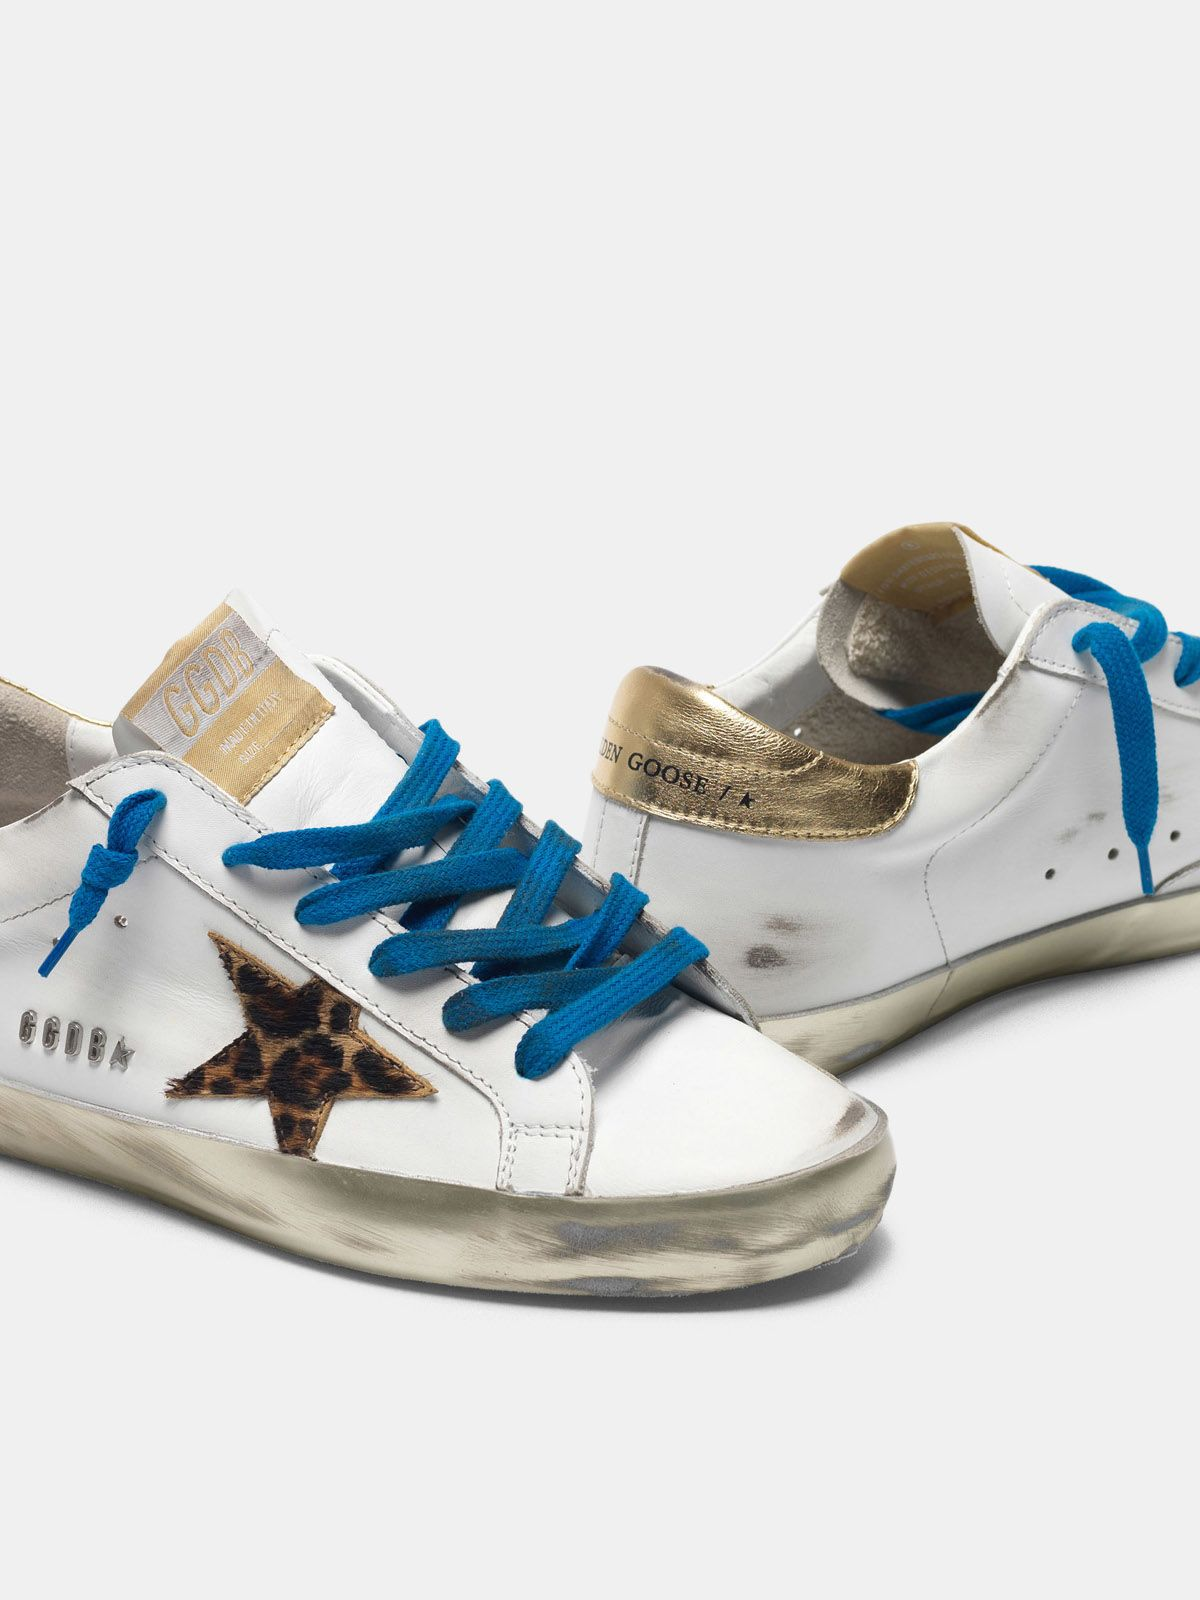 Golden Goose - Sneakers Super-Star con foxing sparkle e stella leopardata in